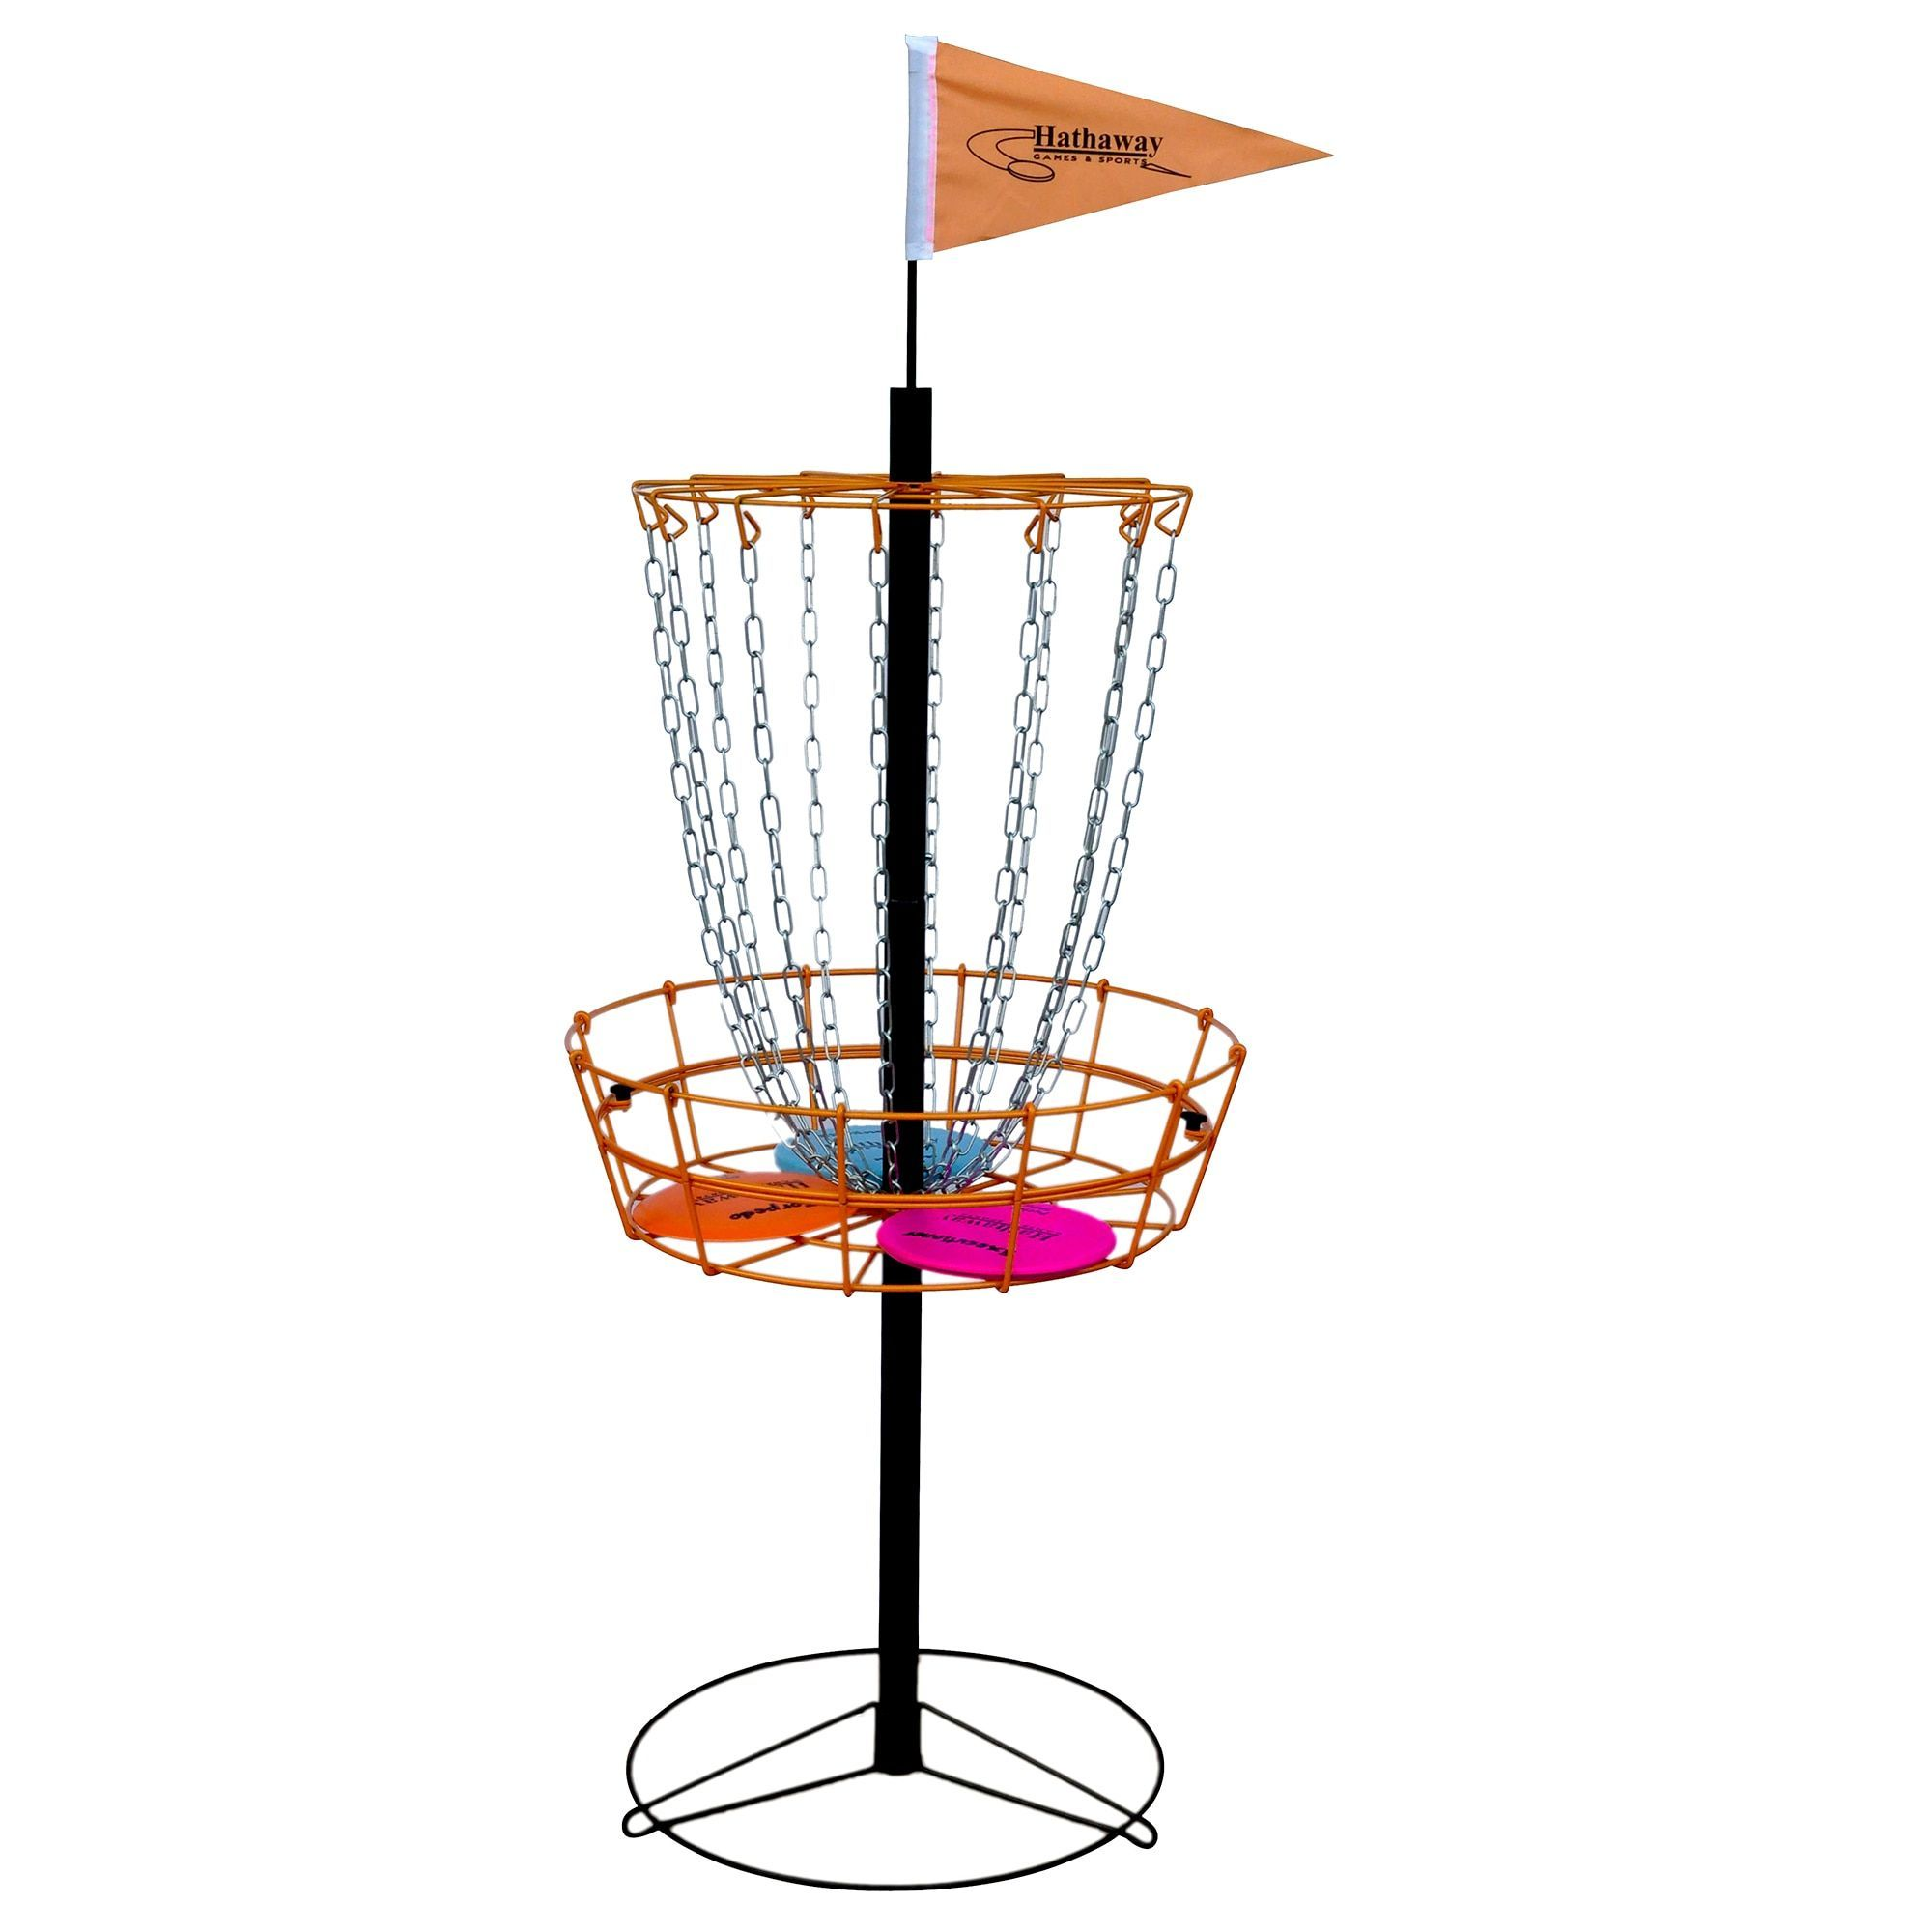 Hathaway Disc Golf Set Products Pinterest